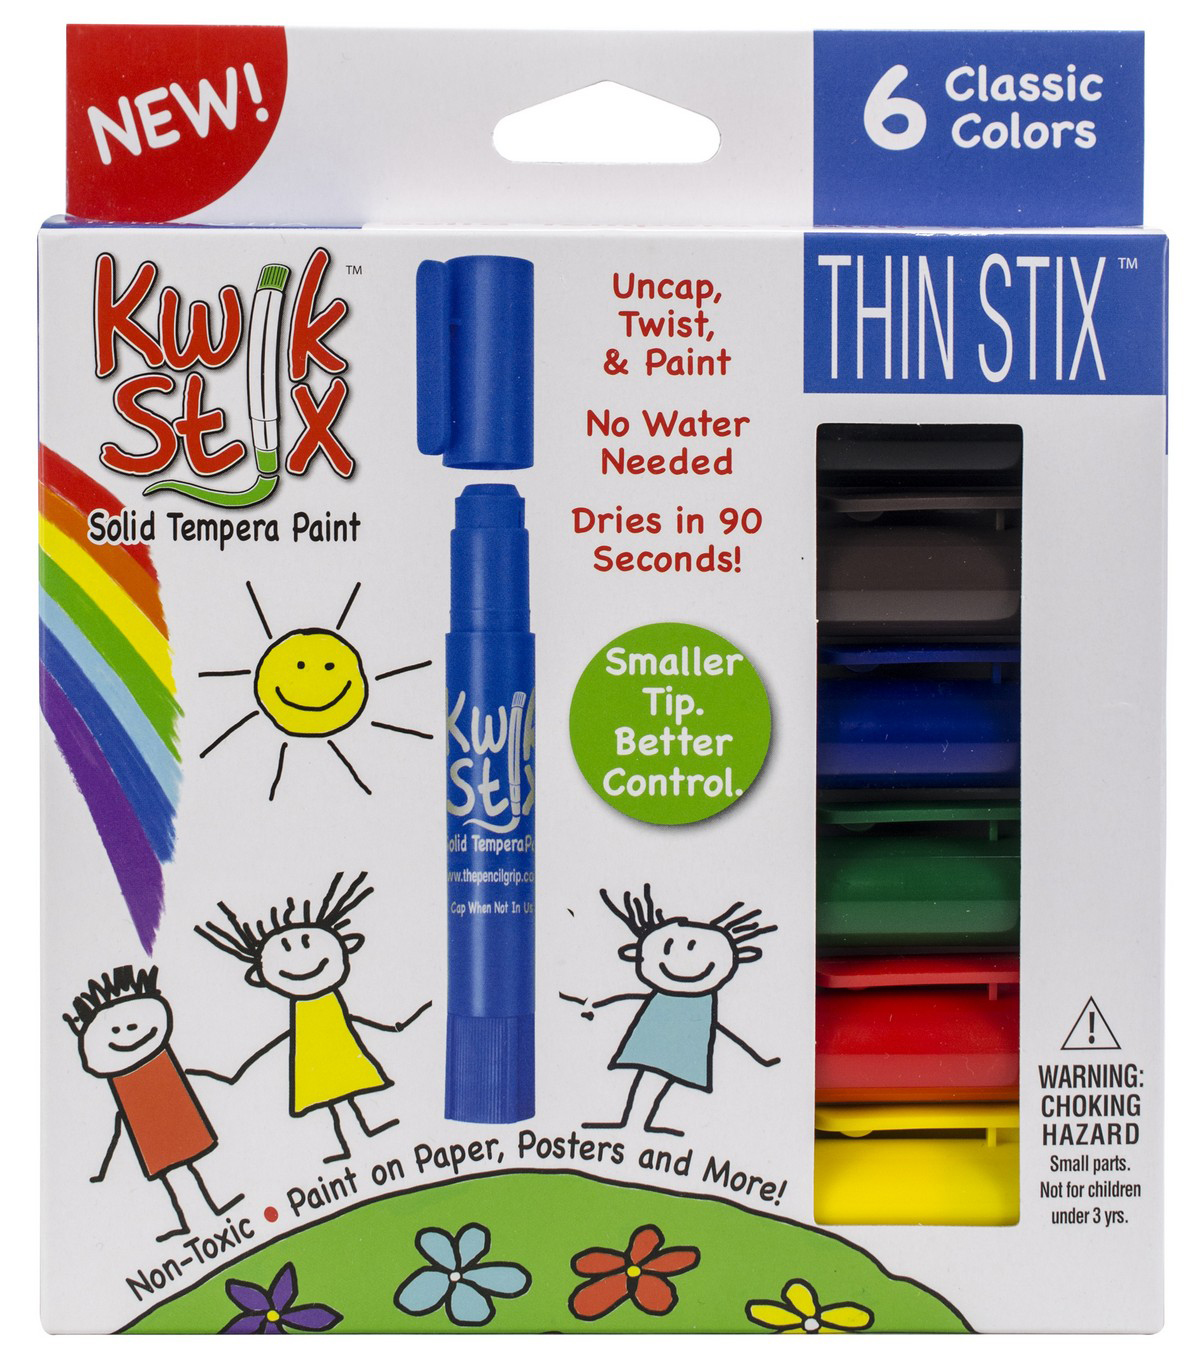 Kwik Stix ThinStix Tempera Paint 6/pkg-Classic Assorted